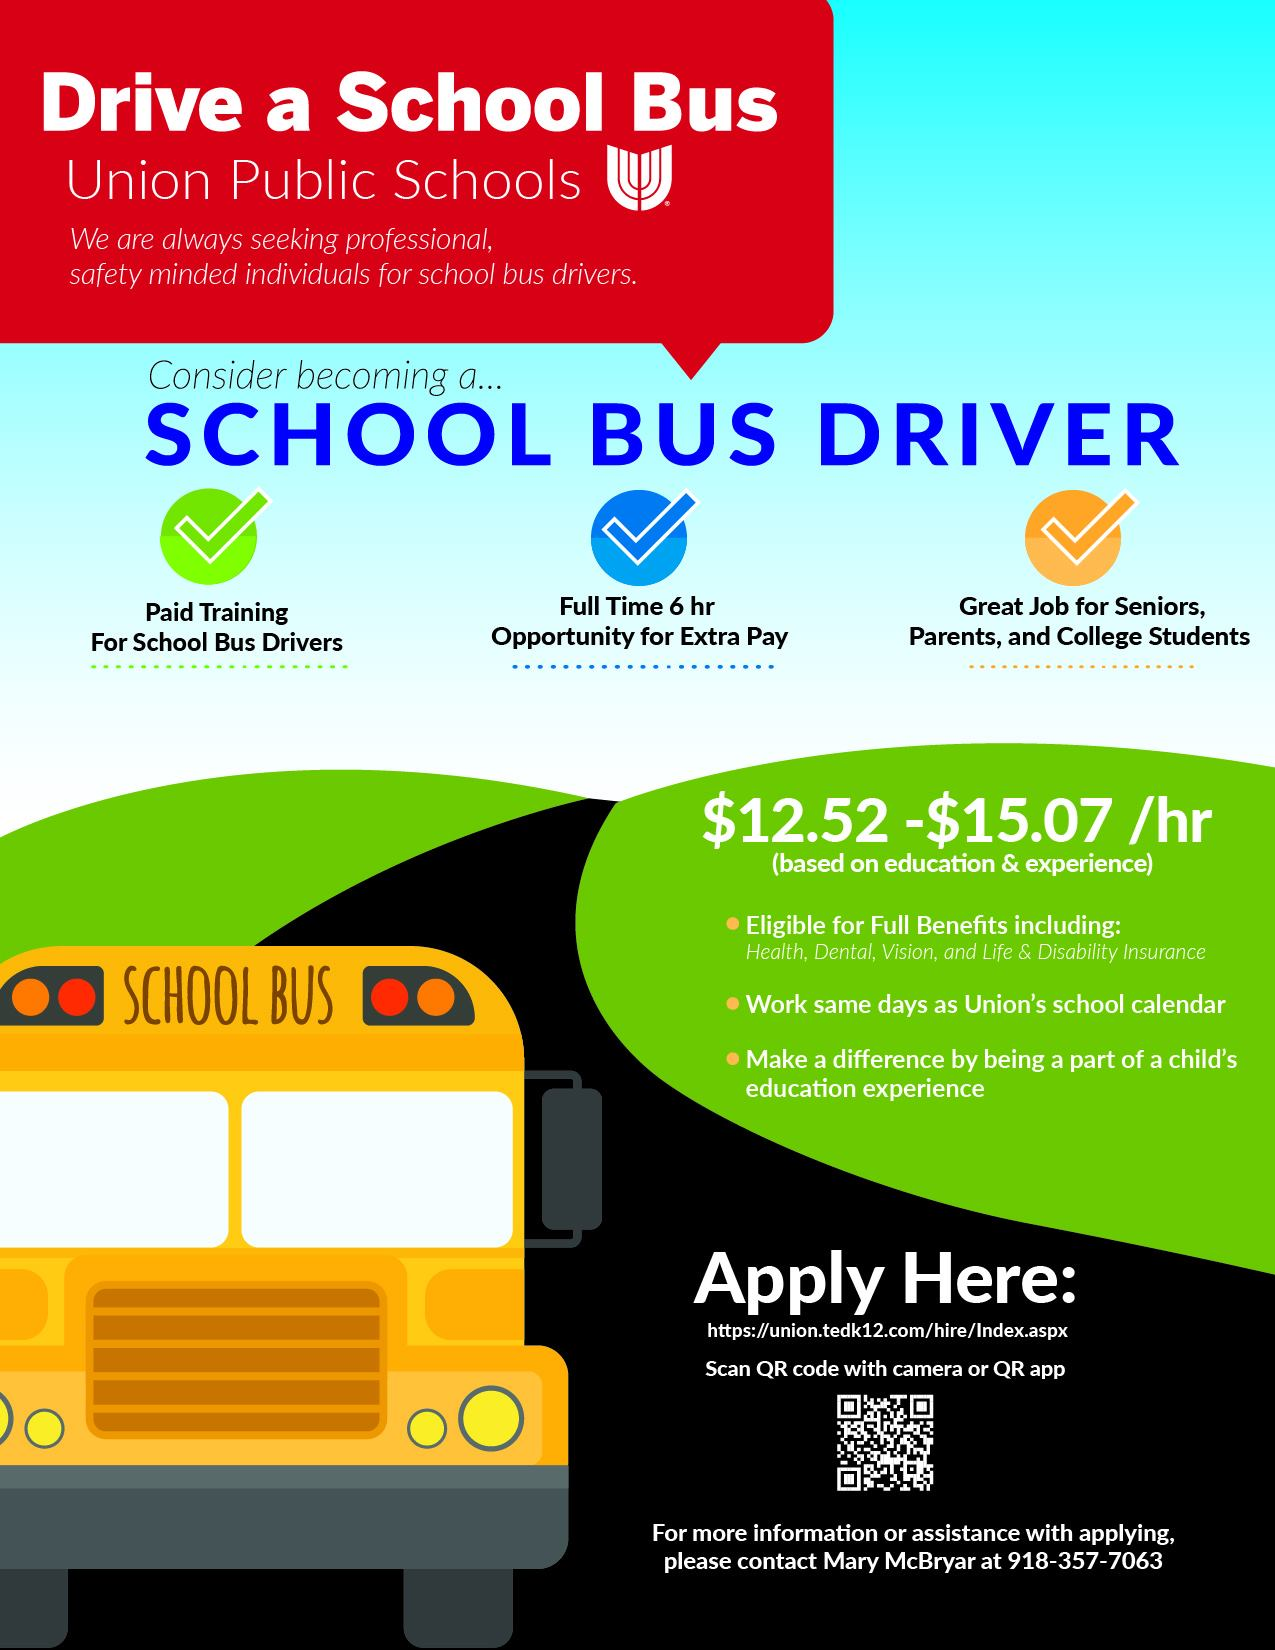 Drive a school bus for Union Schools!